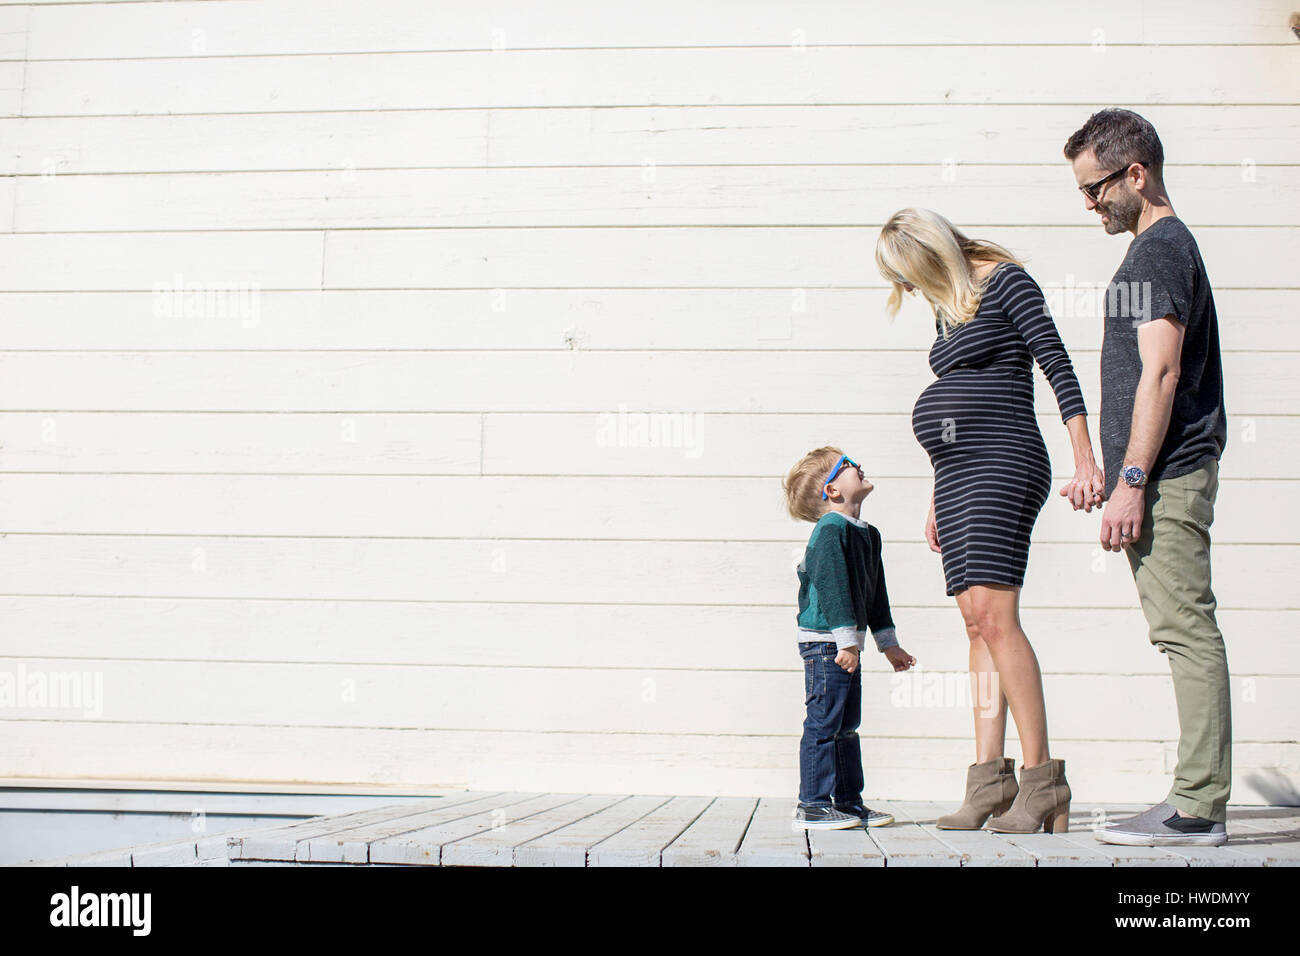 Parents and boy beside wooden building - Stock Image